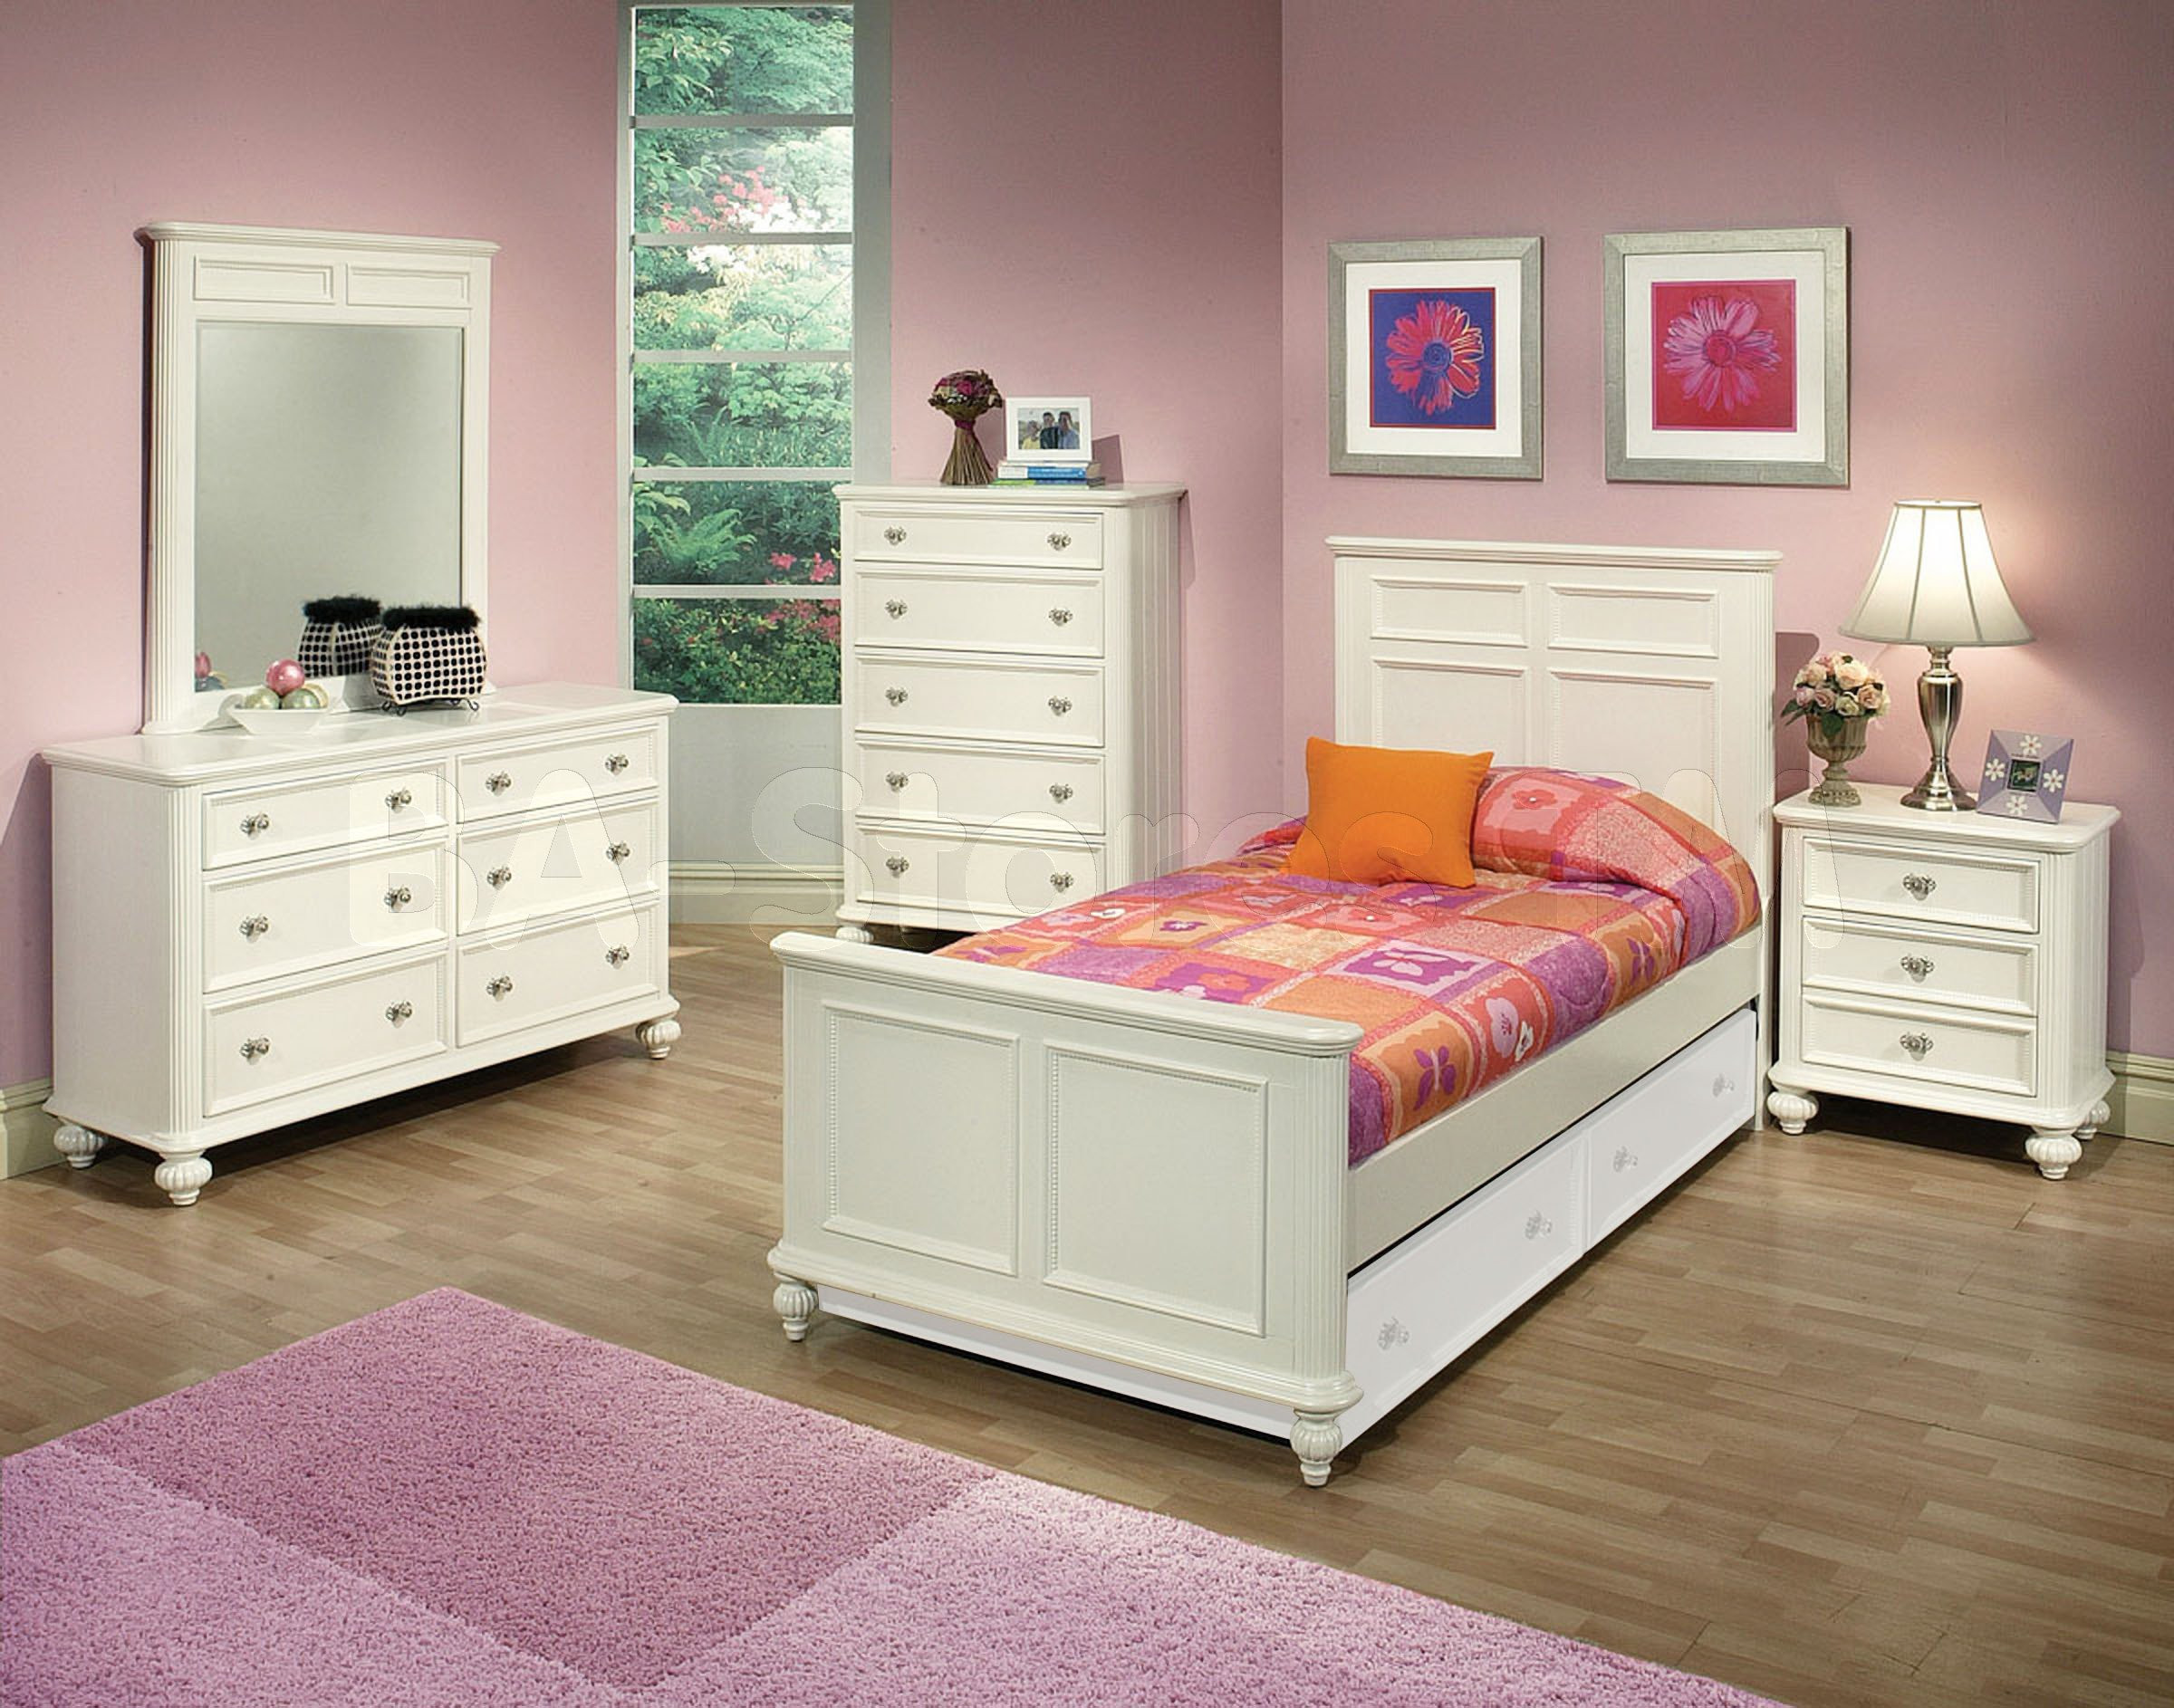 Best ideas about Kids Bedroom Furniture Sets . Save or Pin Solid wood bedroom furniture for kids 20 tips for best Now.